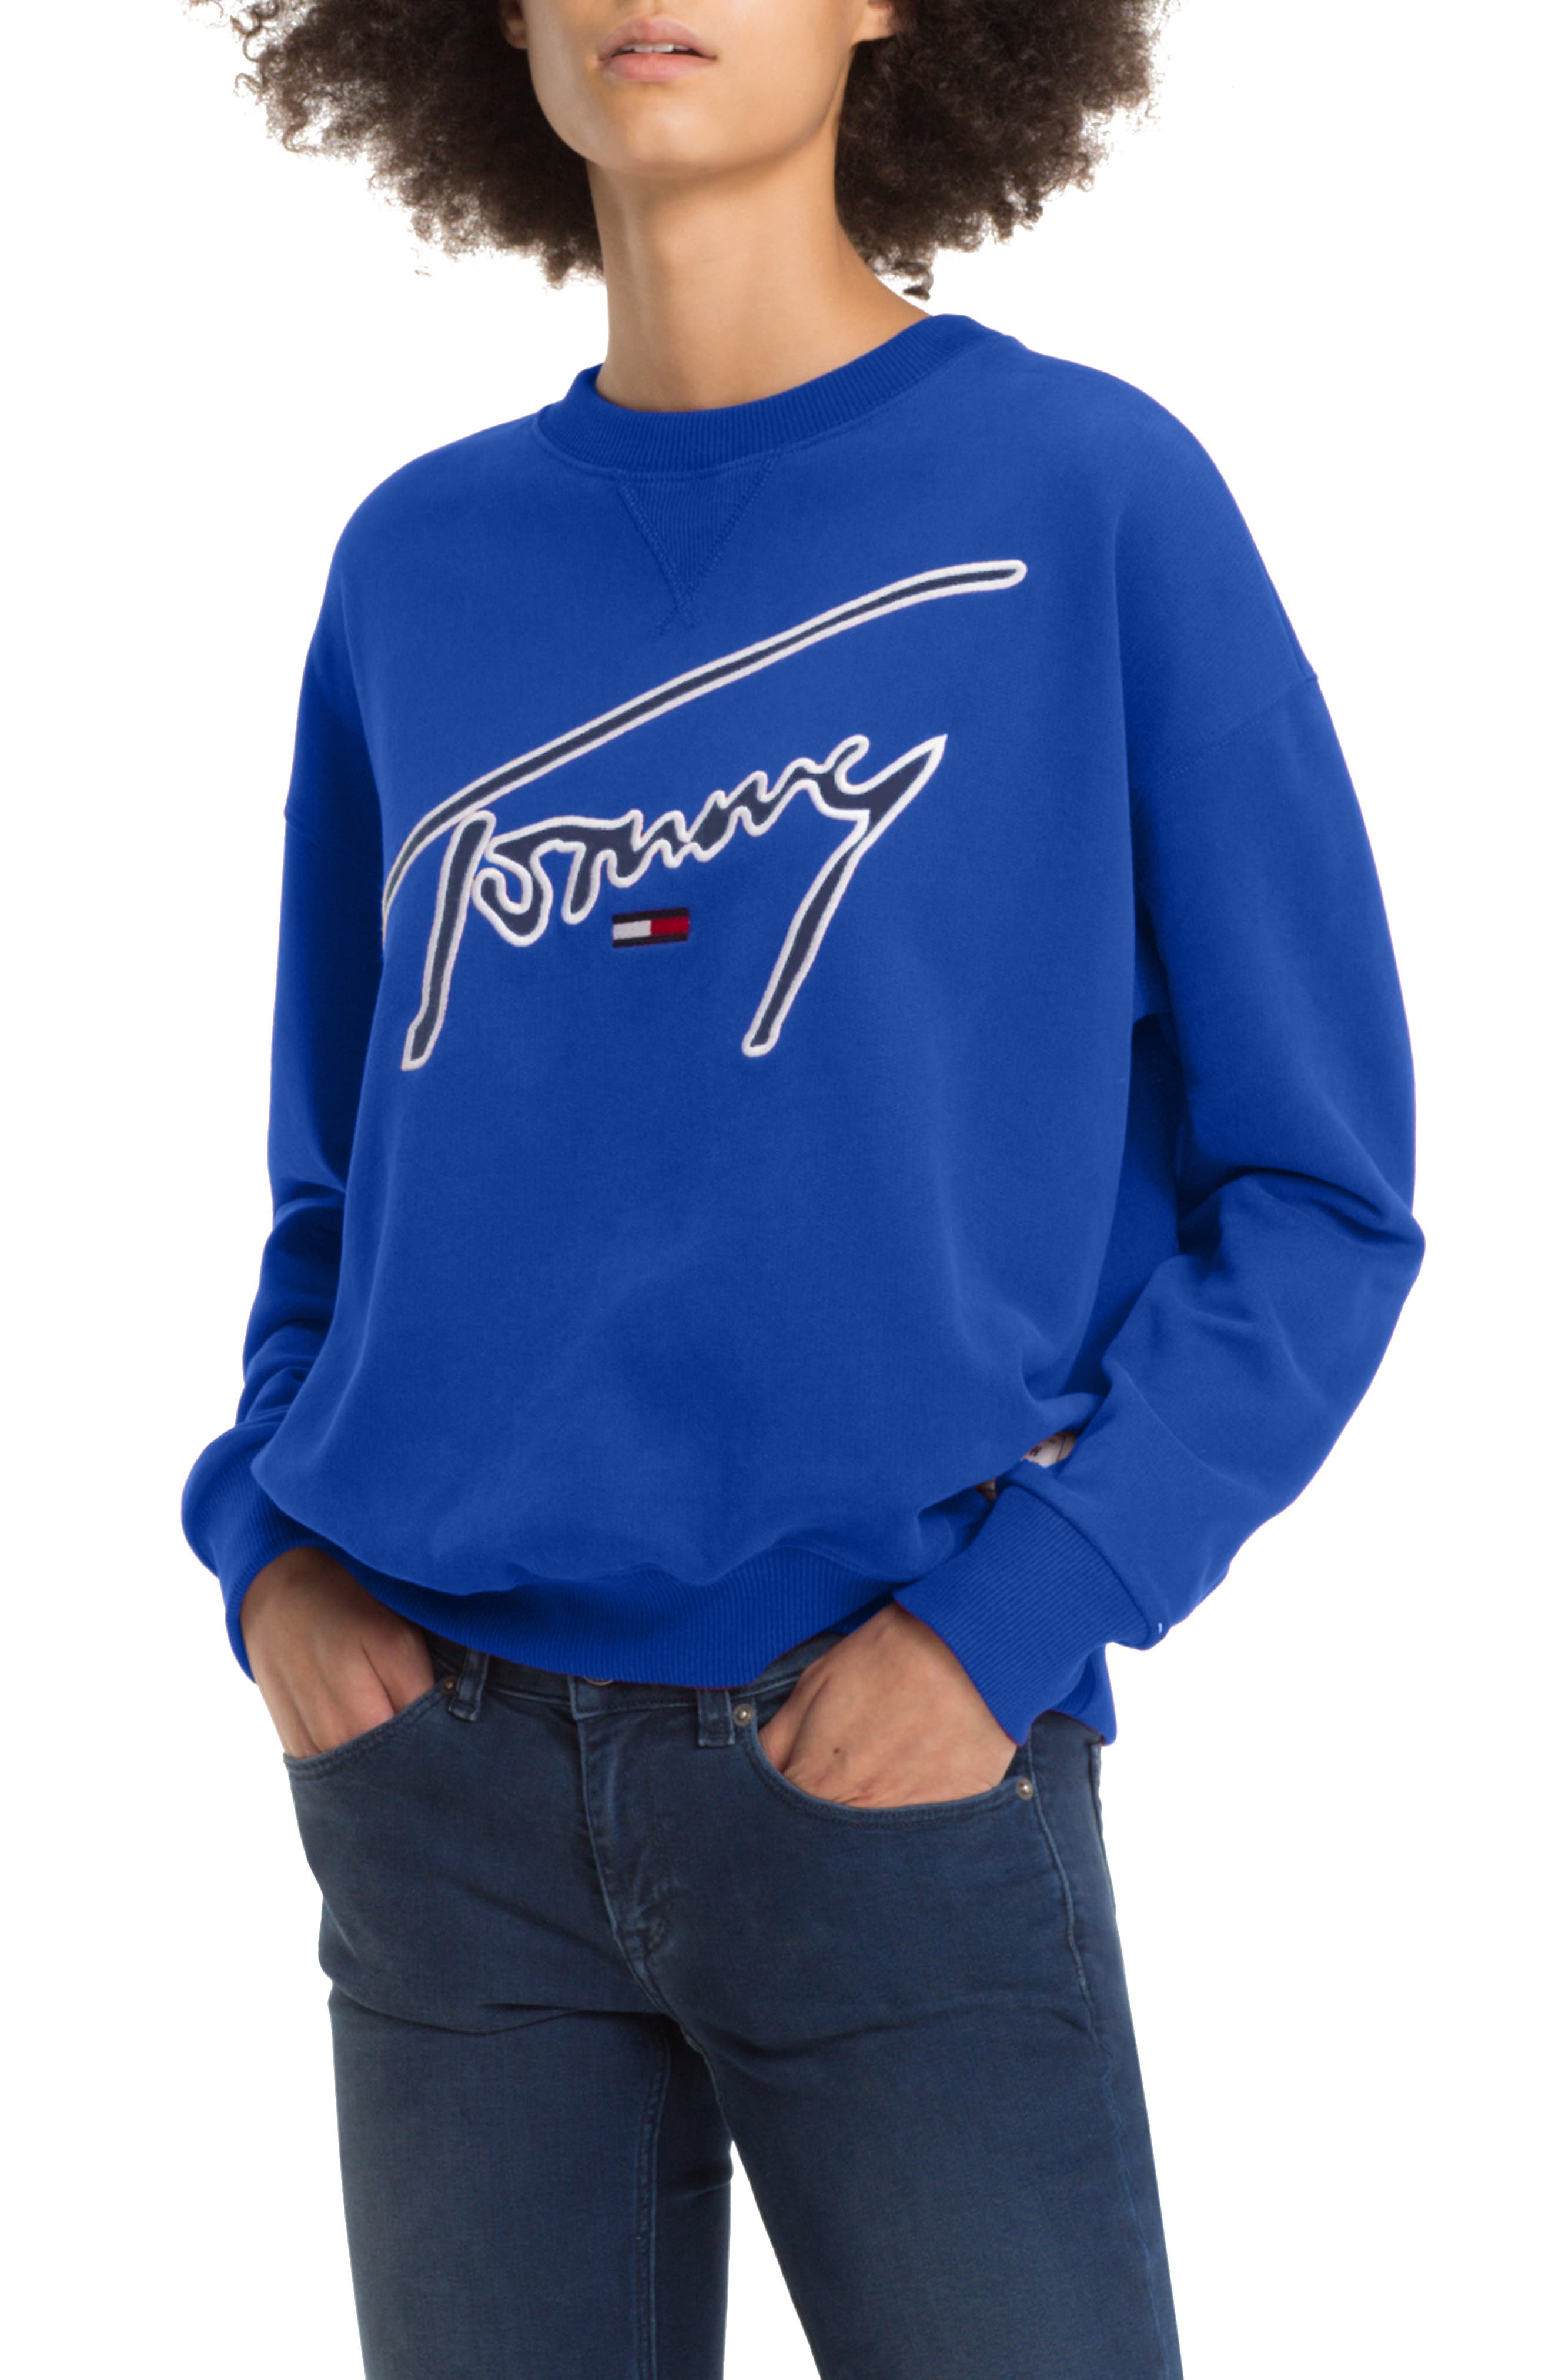 TOMMY JEANS TJW Embroidered Logo Sweatshirt, Main, color, 419